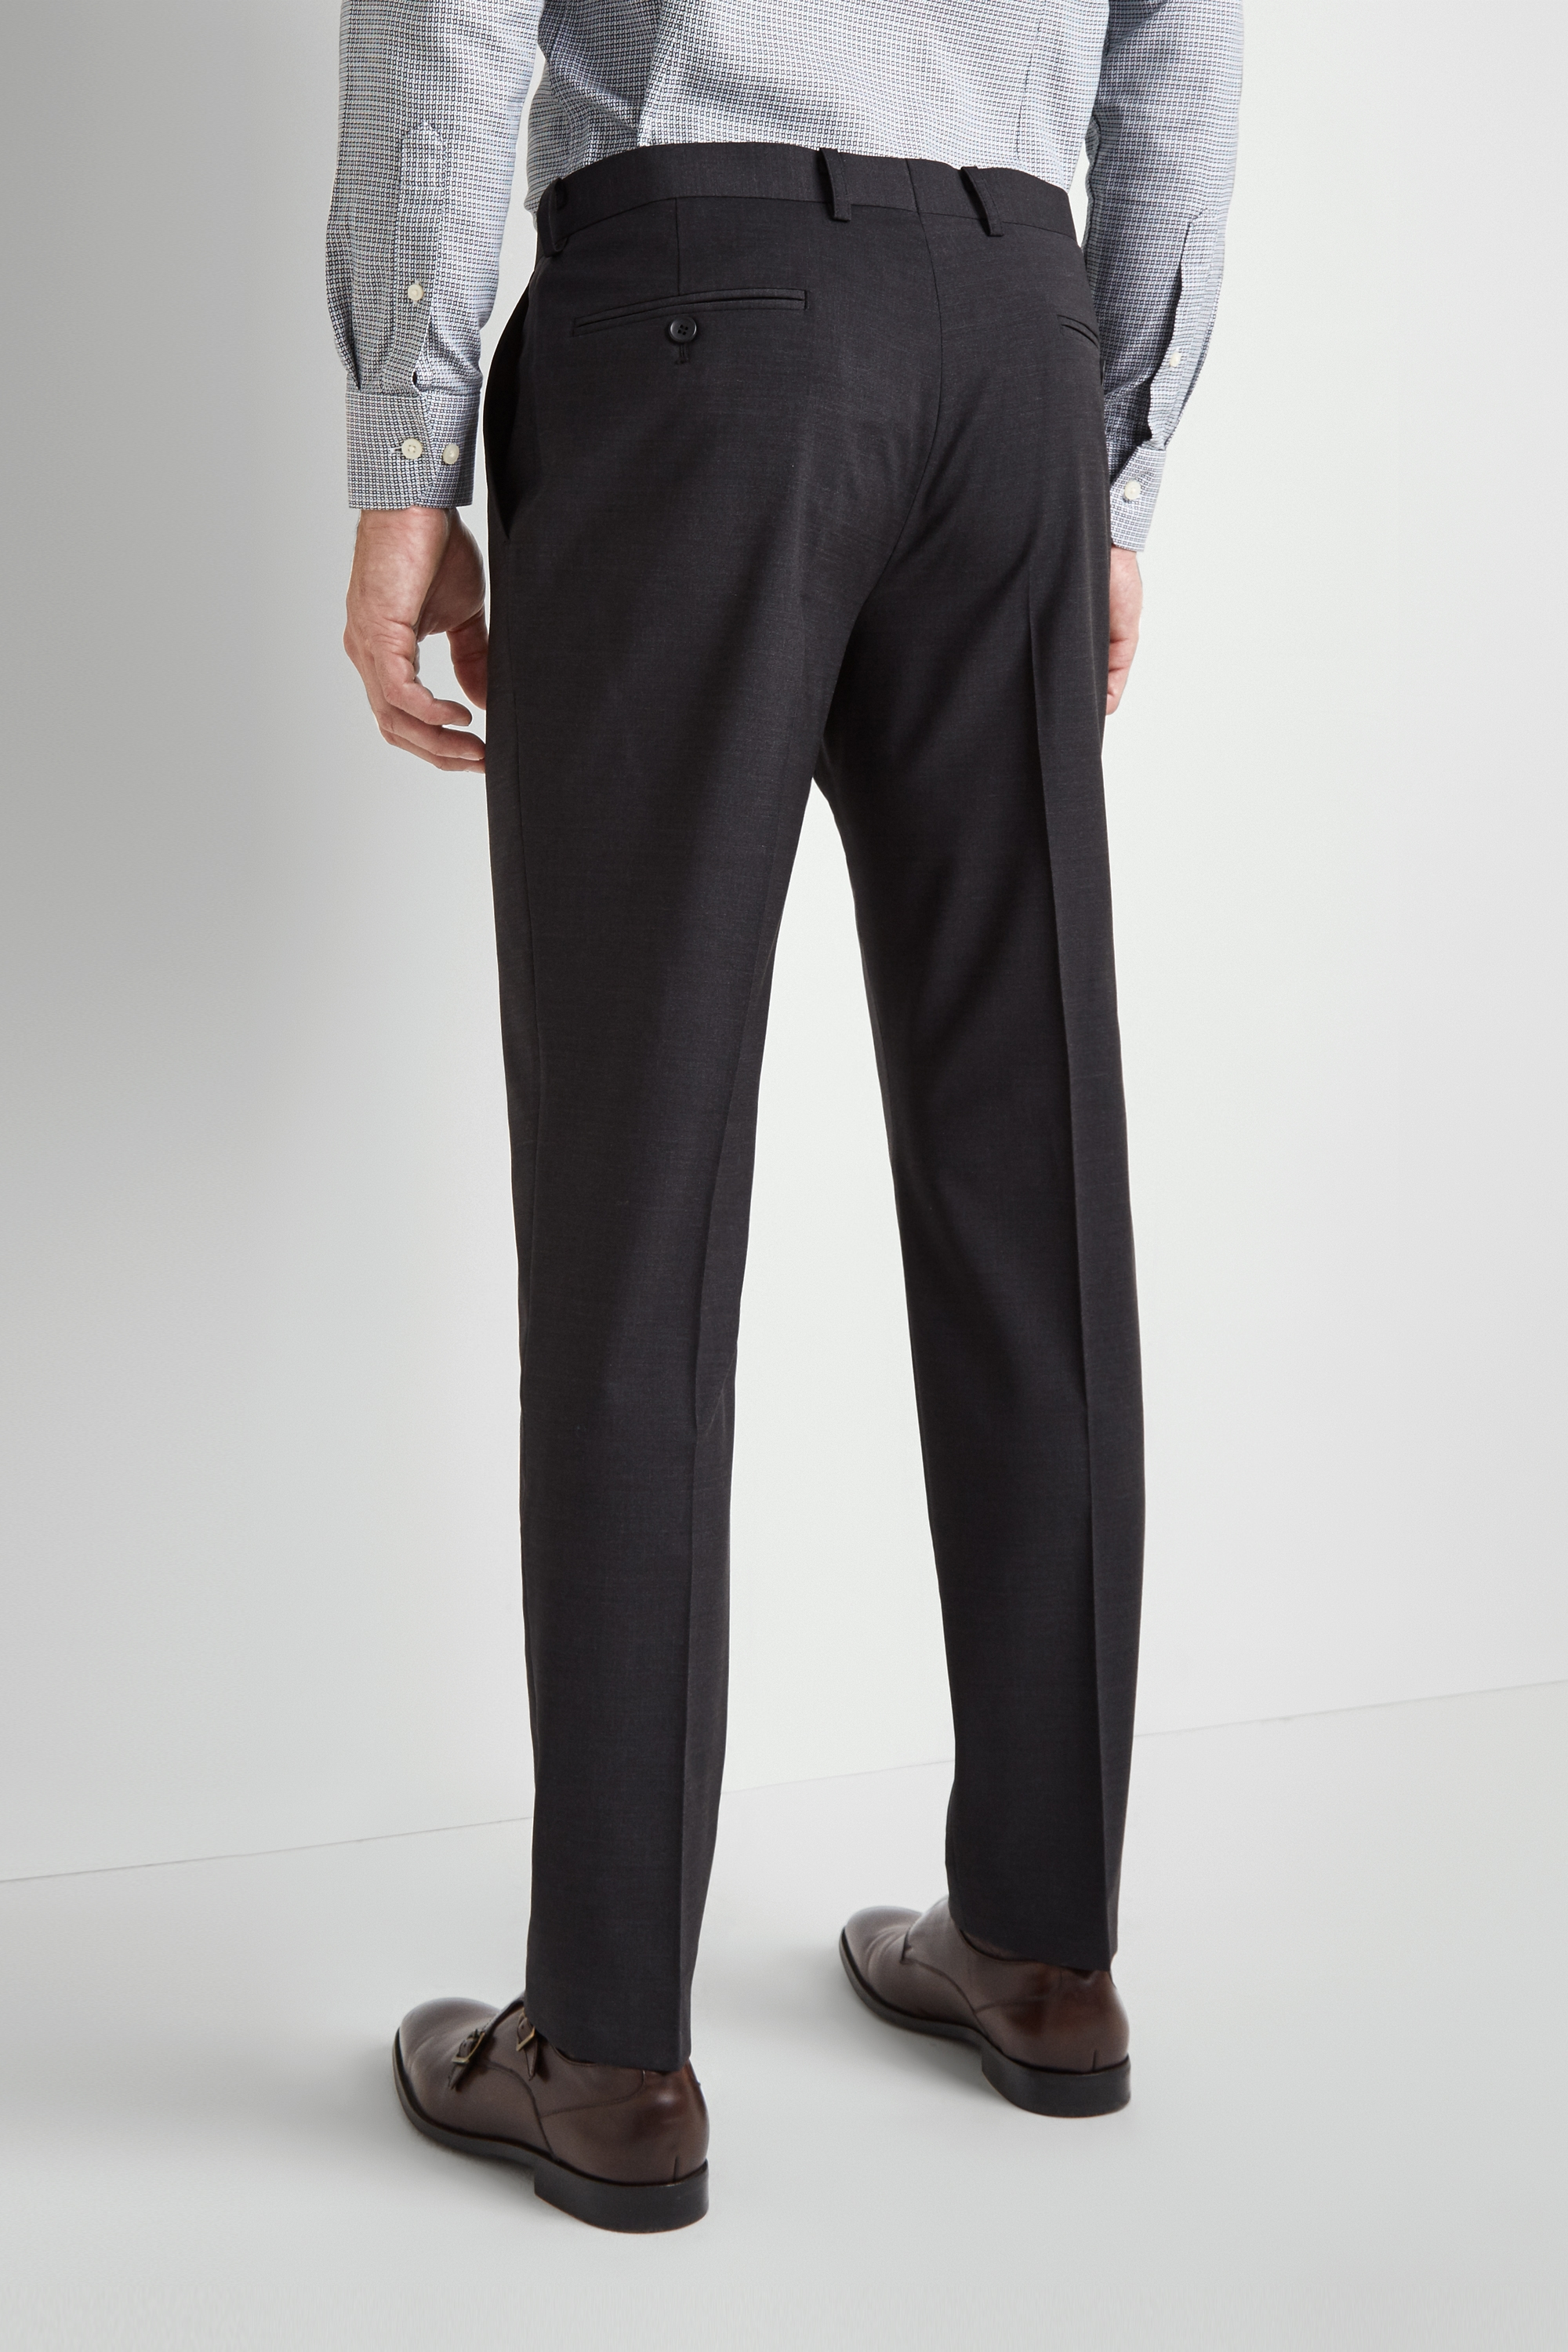 Moss Bros Moss 1851 Performance Tailored Fit Charcoal Trousers